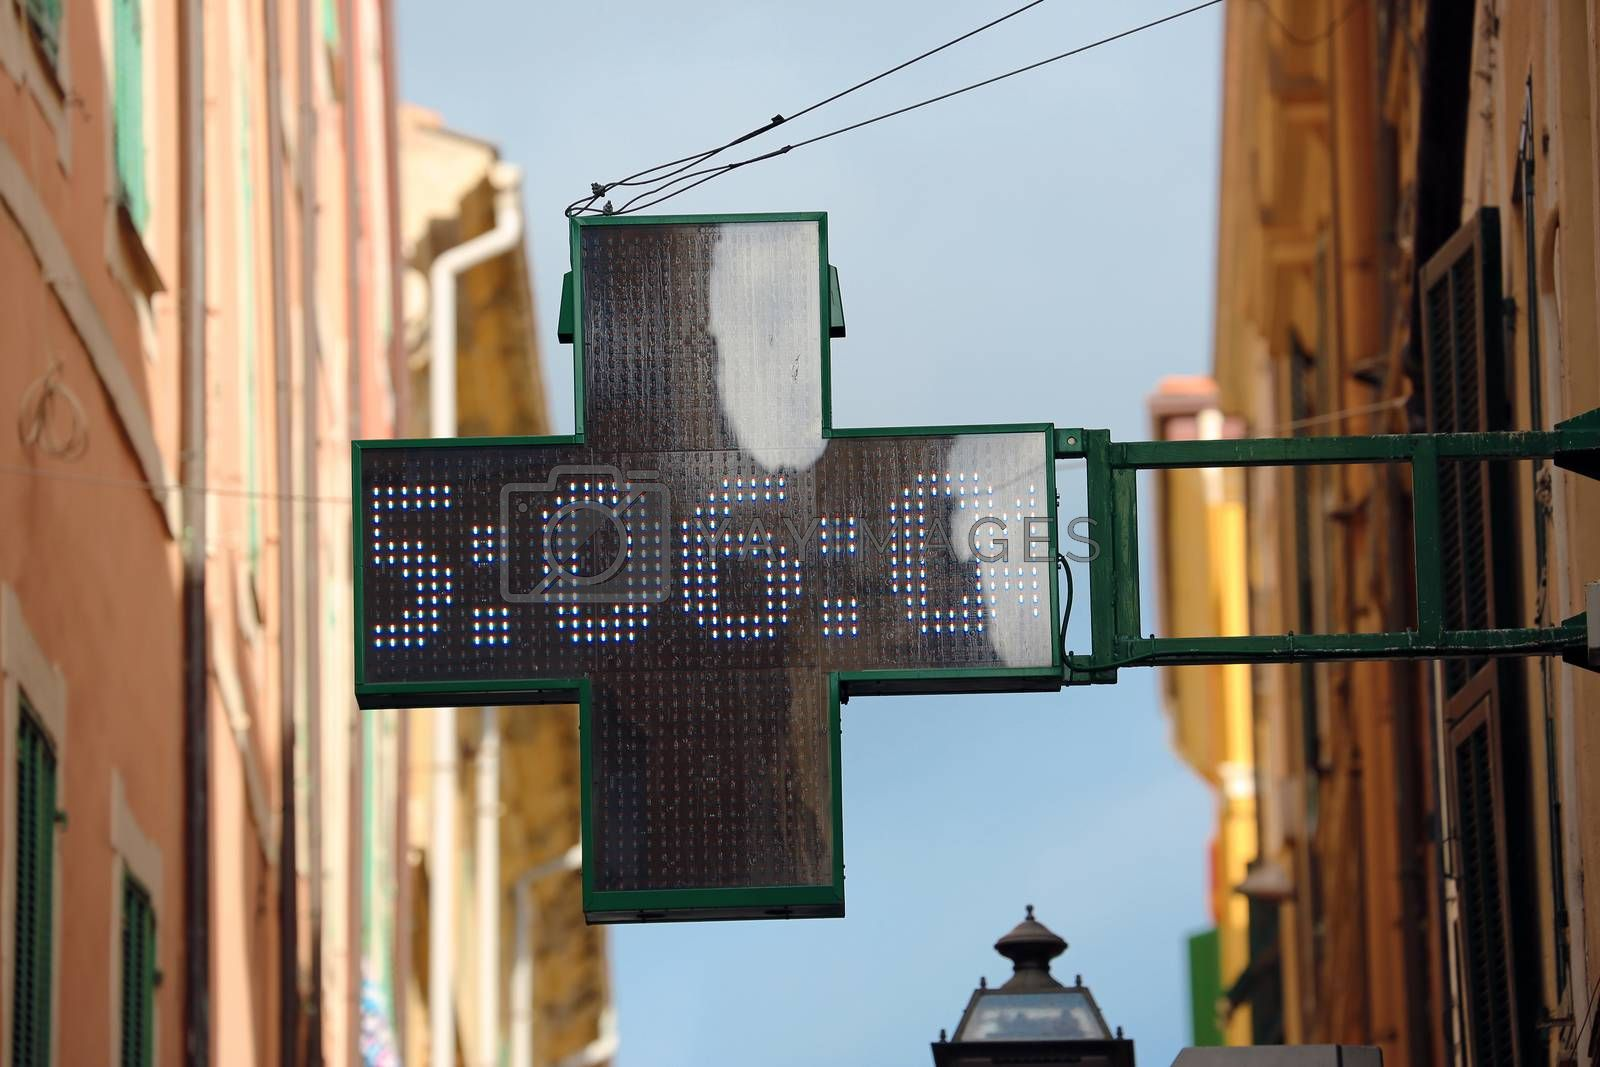 Neon Pharmacy Sign with the Time 5:06 in Italia